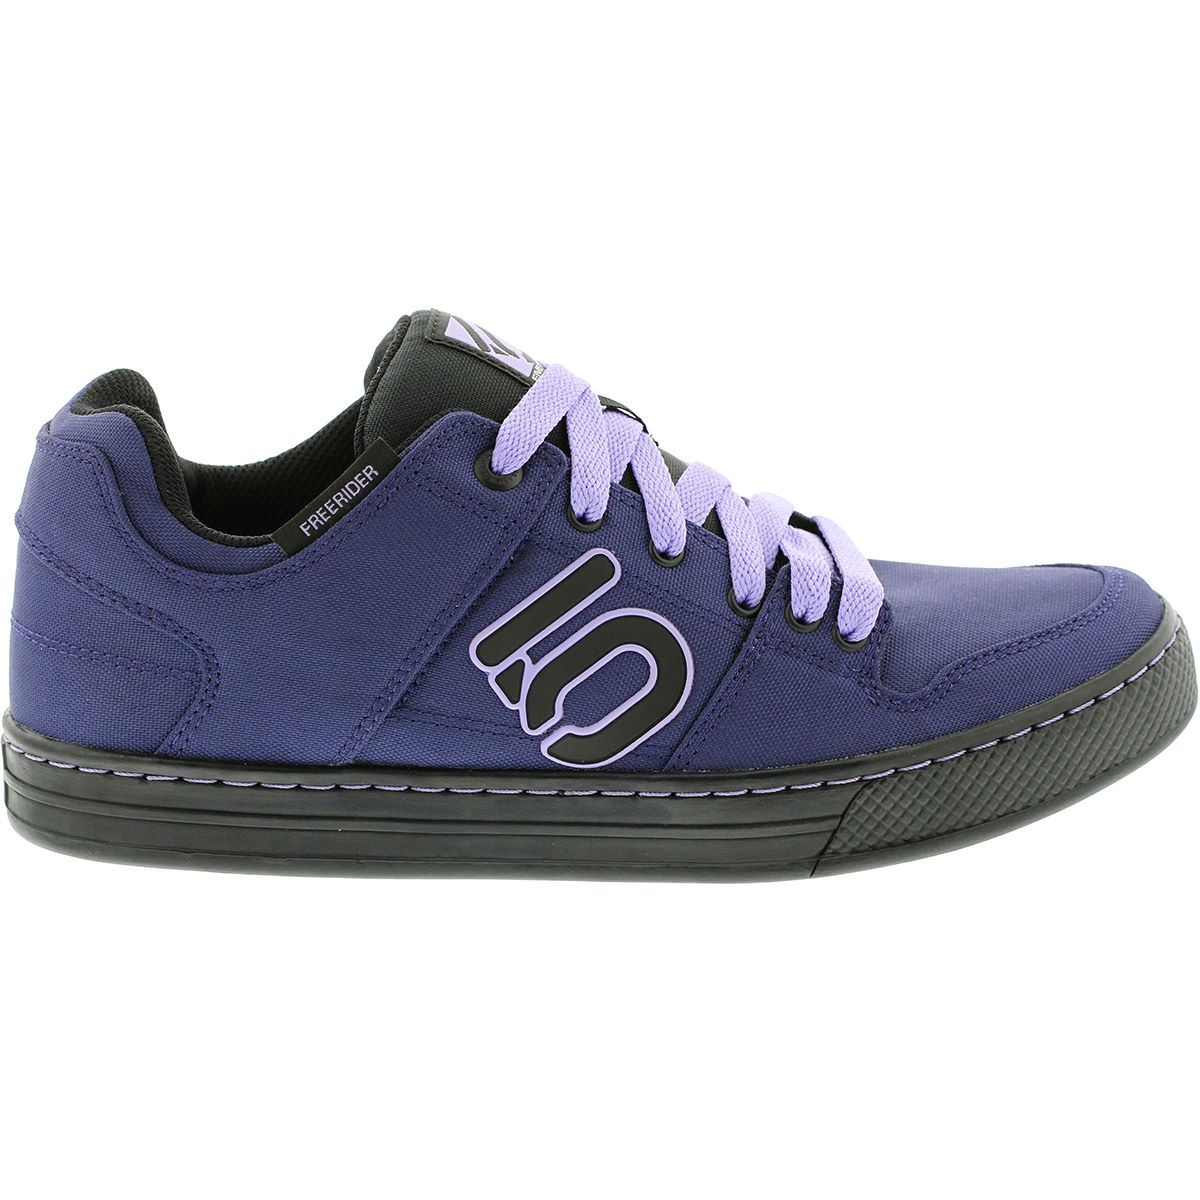 Chaussures VTT Femme Five Ten Freerider Canvas - EU 42 Indigo